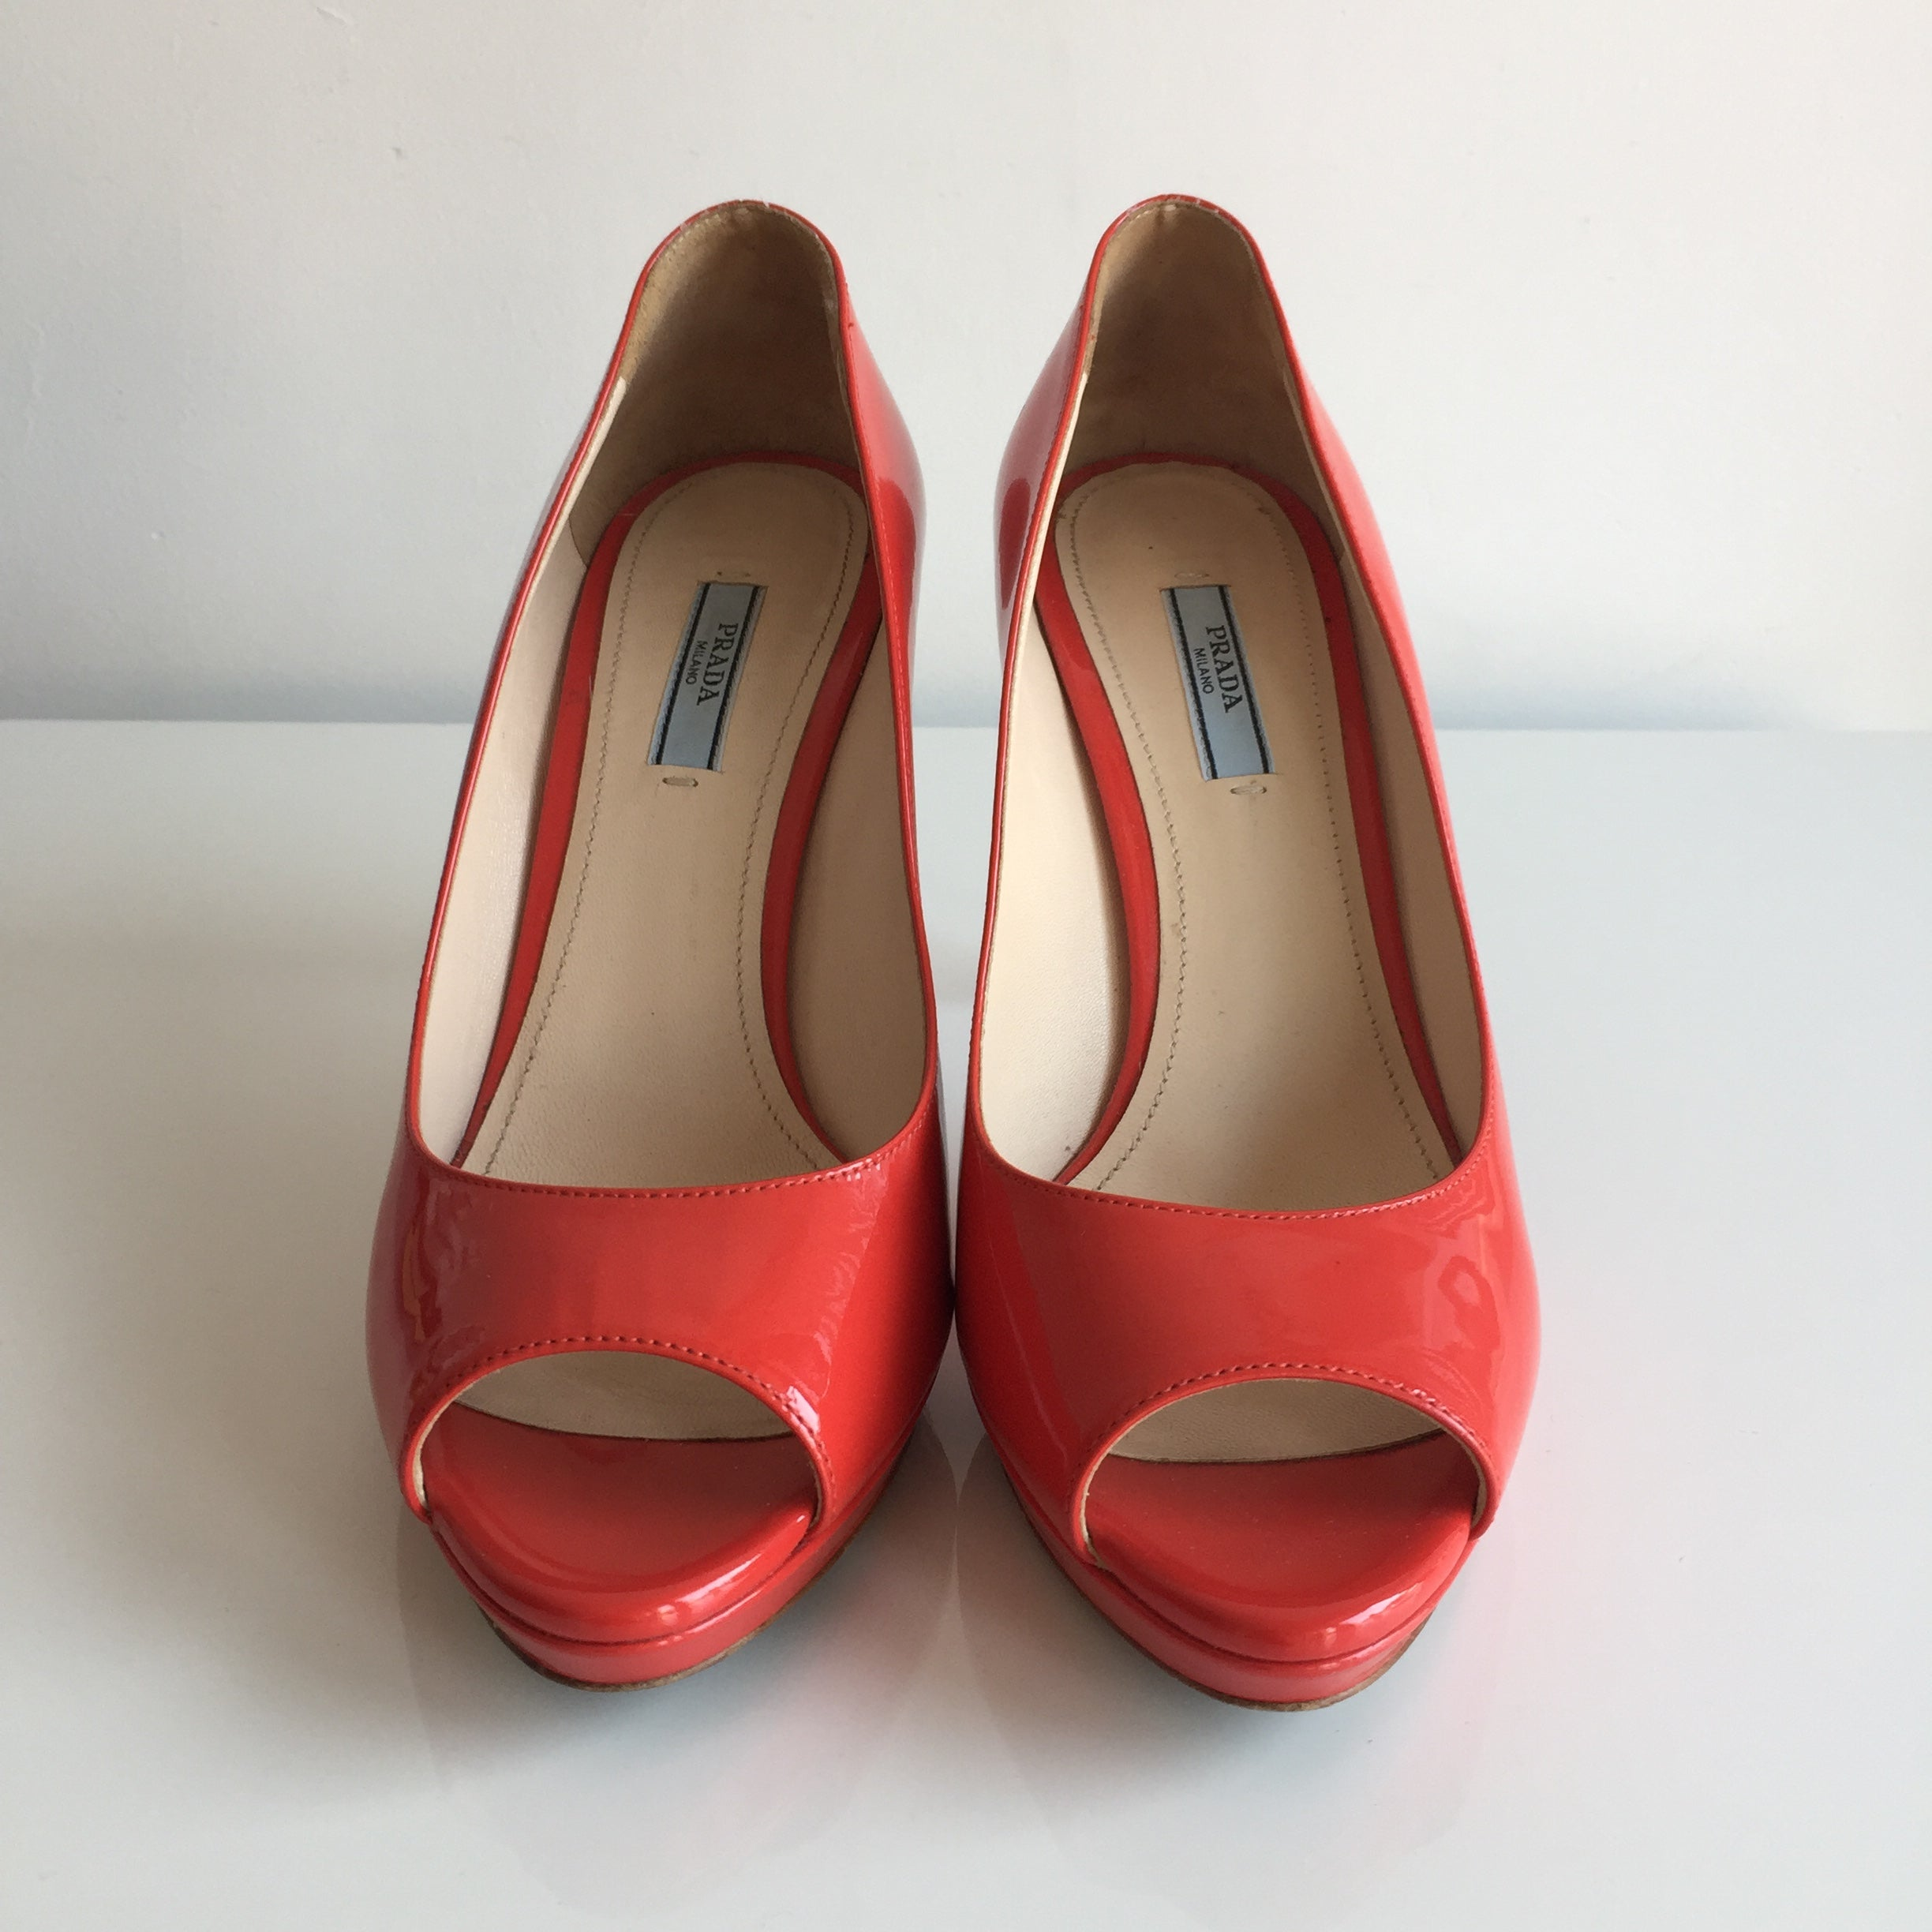 Authentic PRADA Patent Coral Open Toe Pumps Size 9